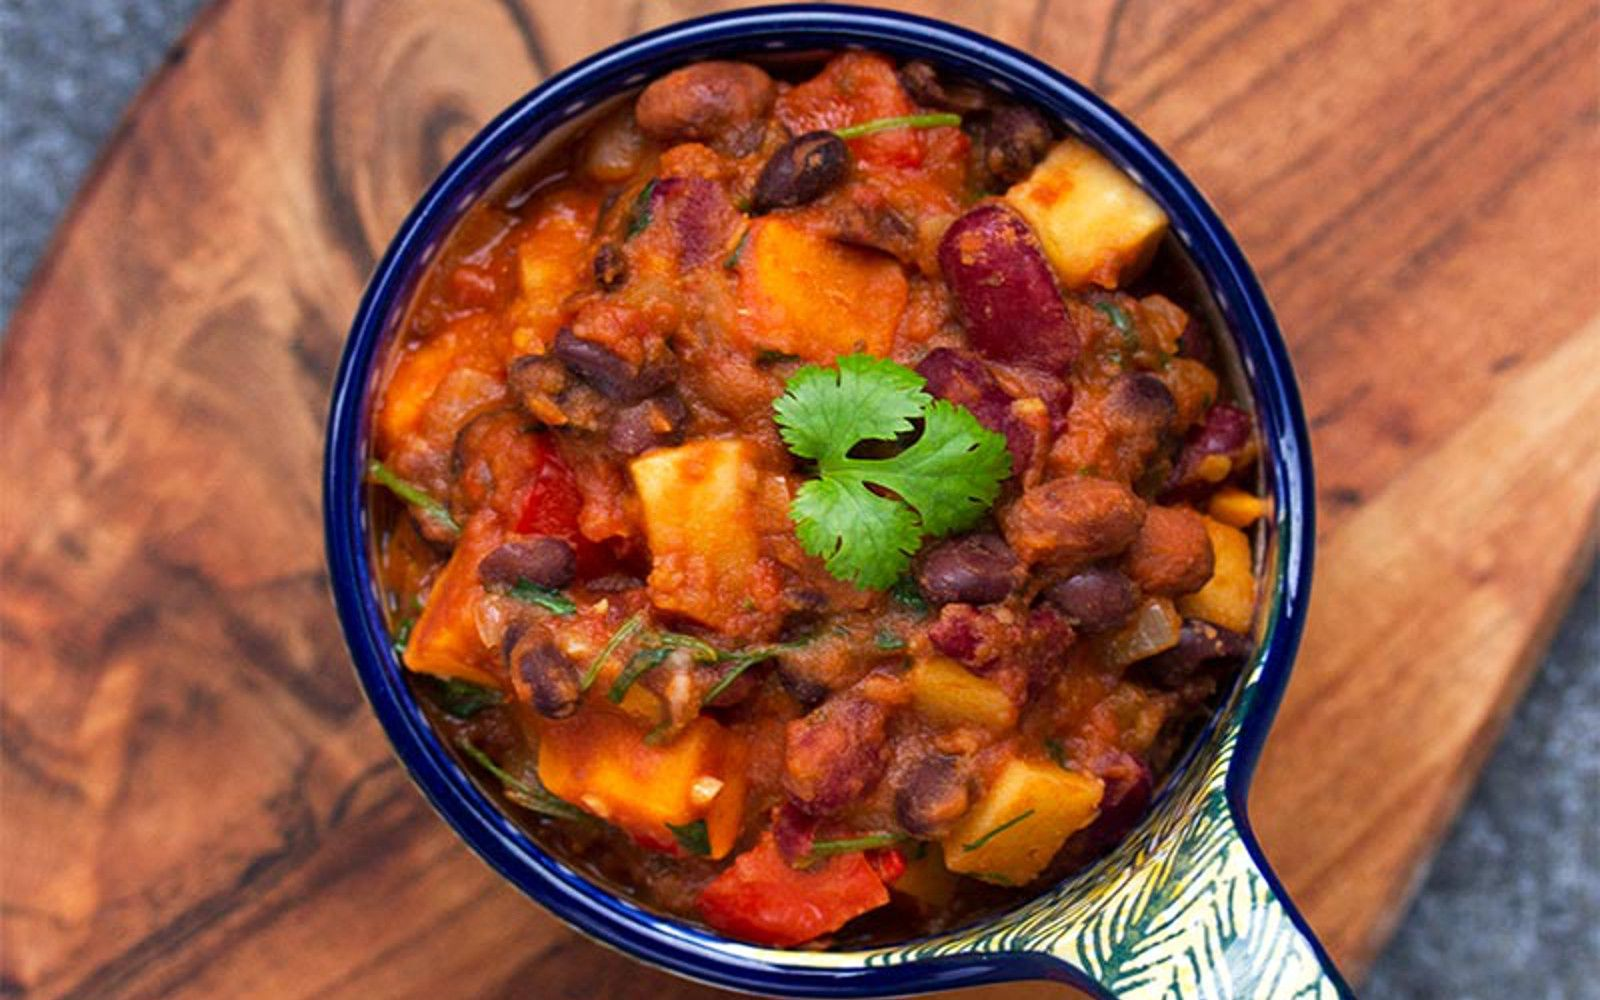 This smoky, spicy chili has just a hint of sweetness thanks to the sweet potatoes. Serve this with crunchy tortilla chips or cool and creamy guacamole!